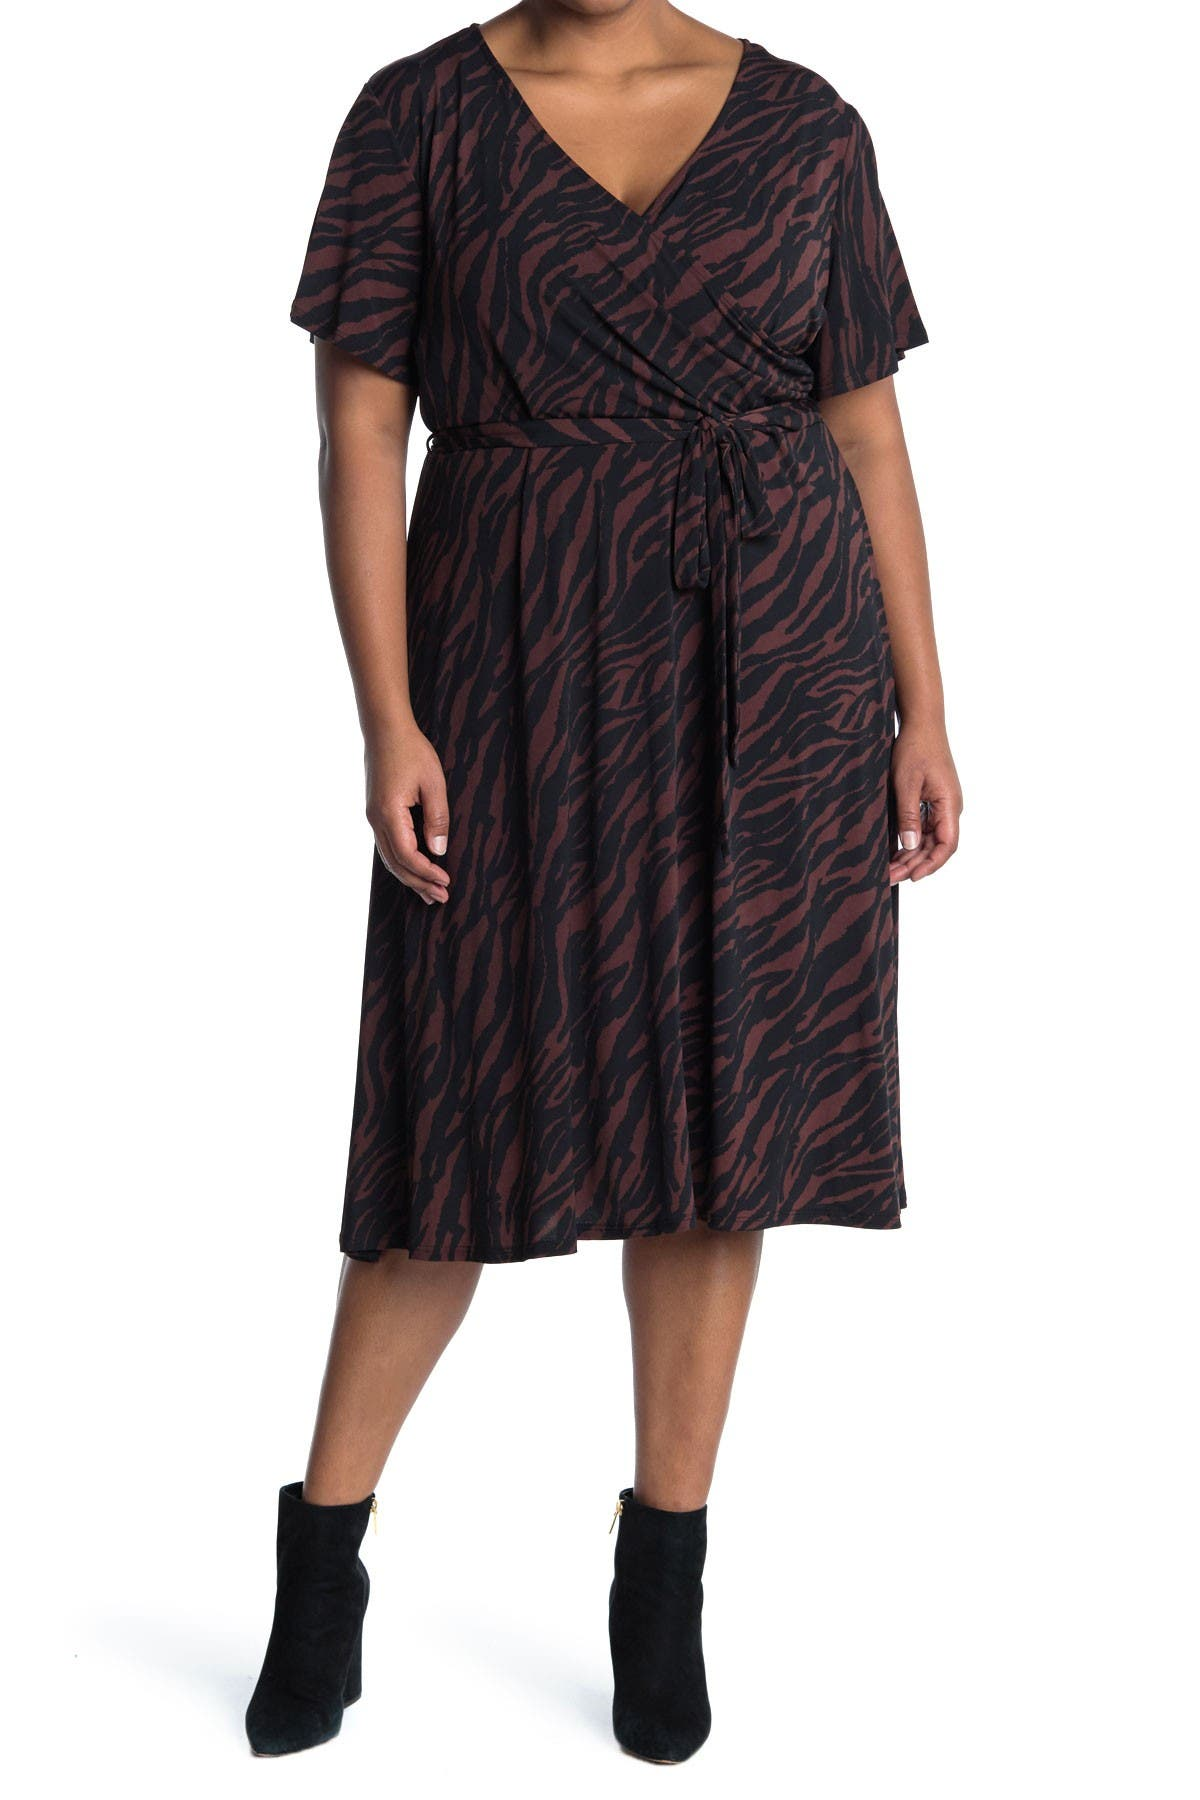 Image of WEST KEI Knit Wrap Dress Zebra Print